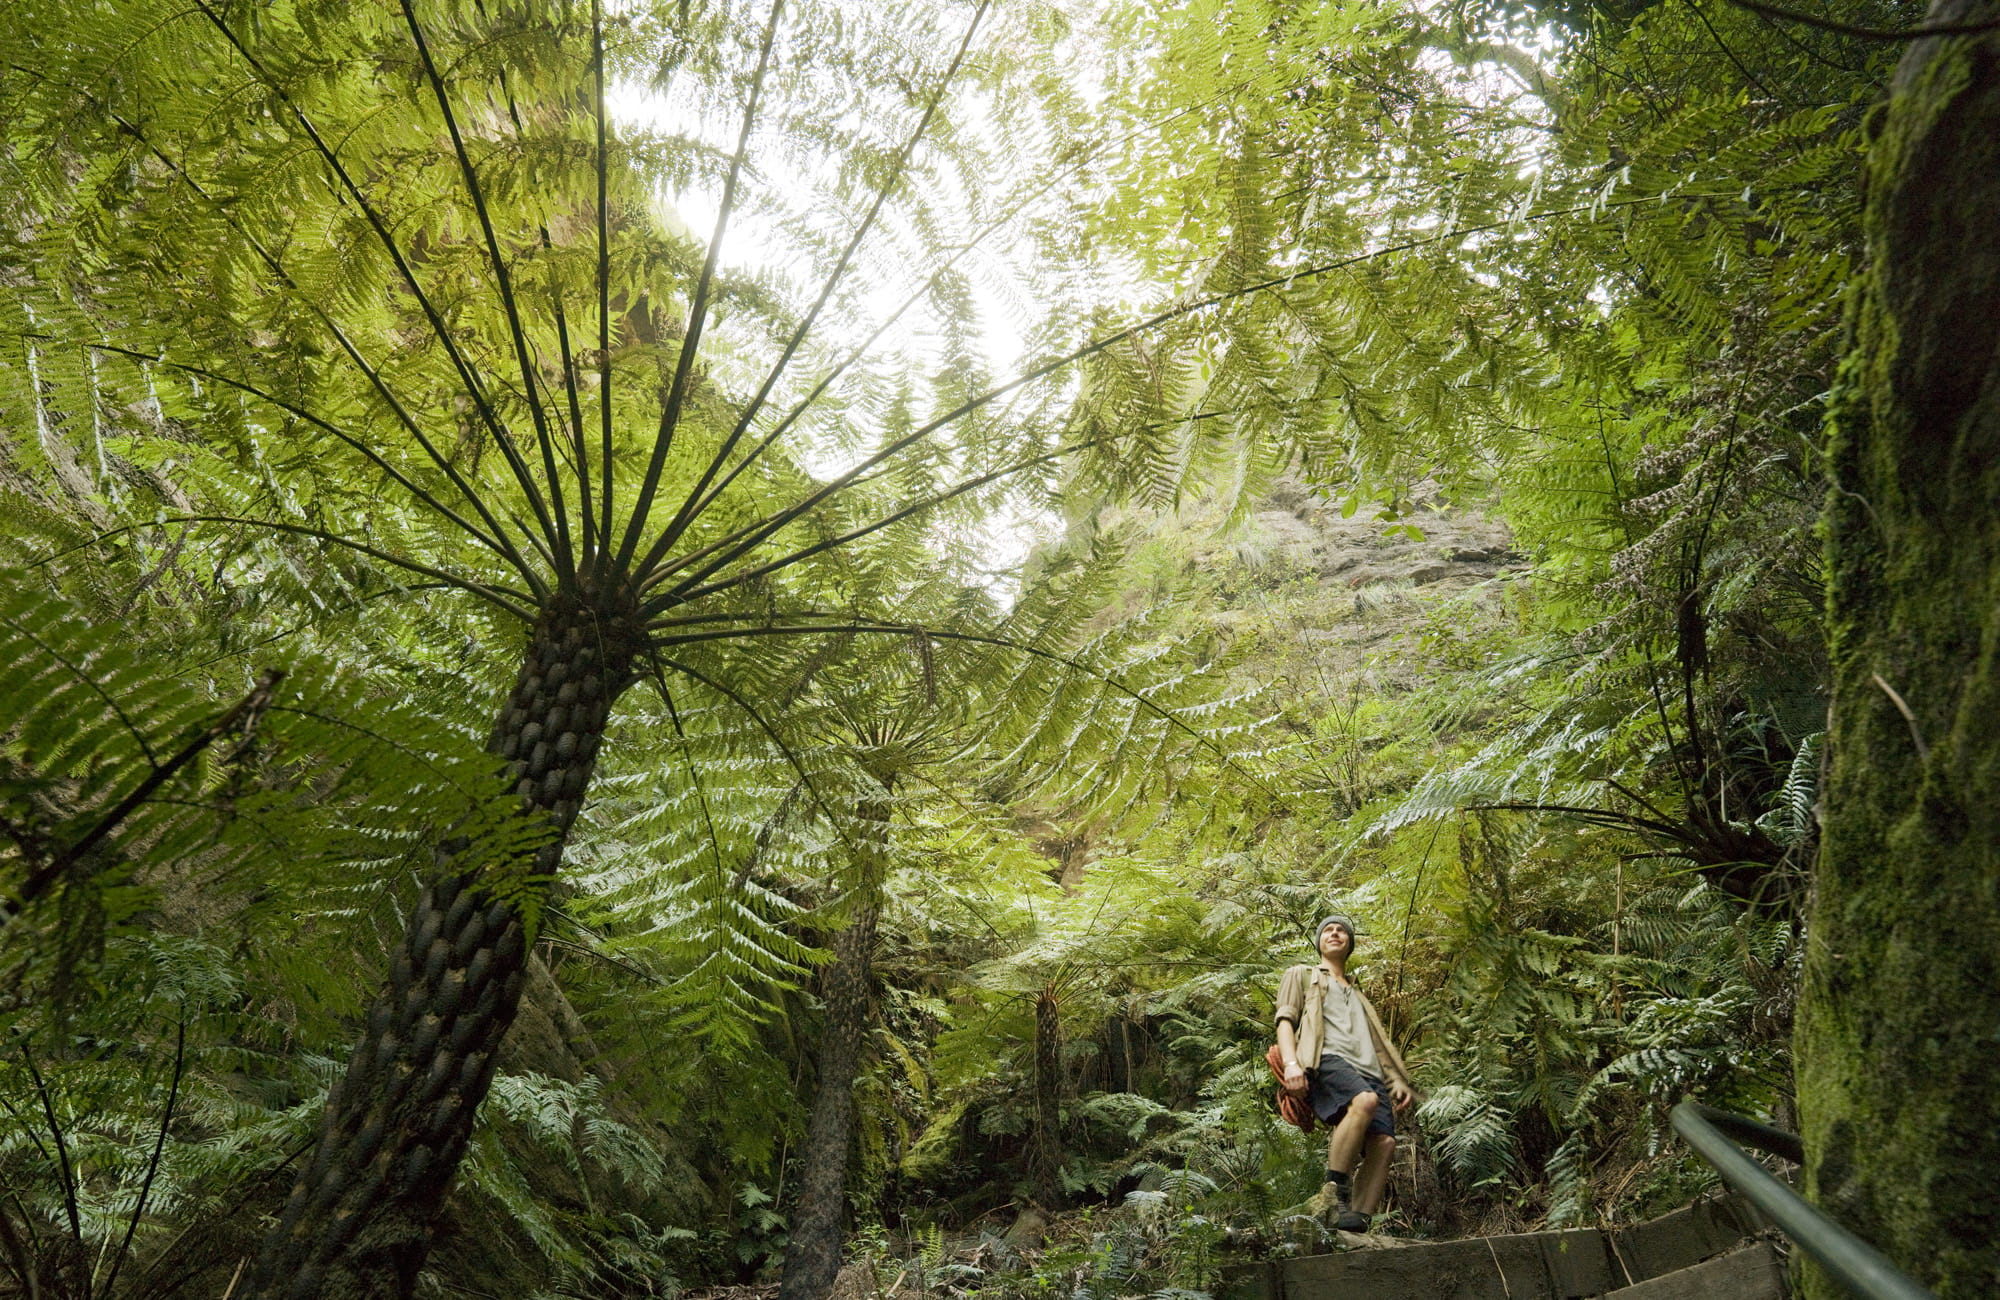 Ferns in Blue Mountains National Park. Photo: David Finnegan